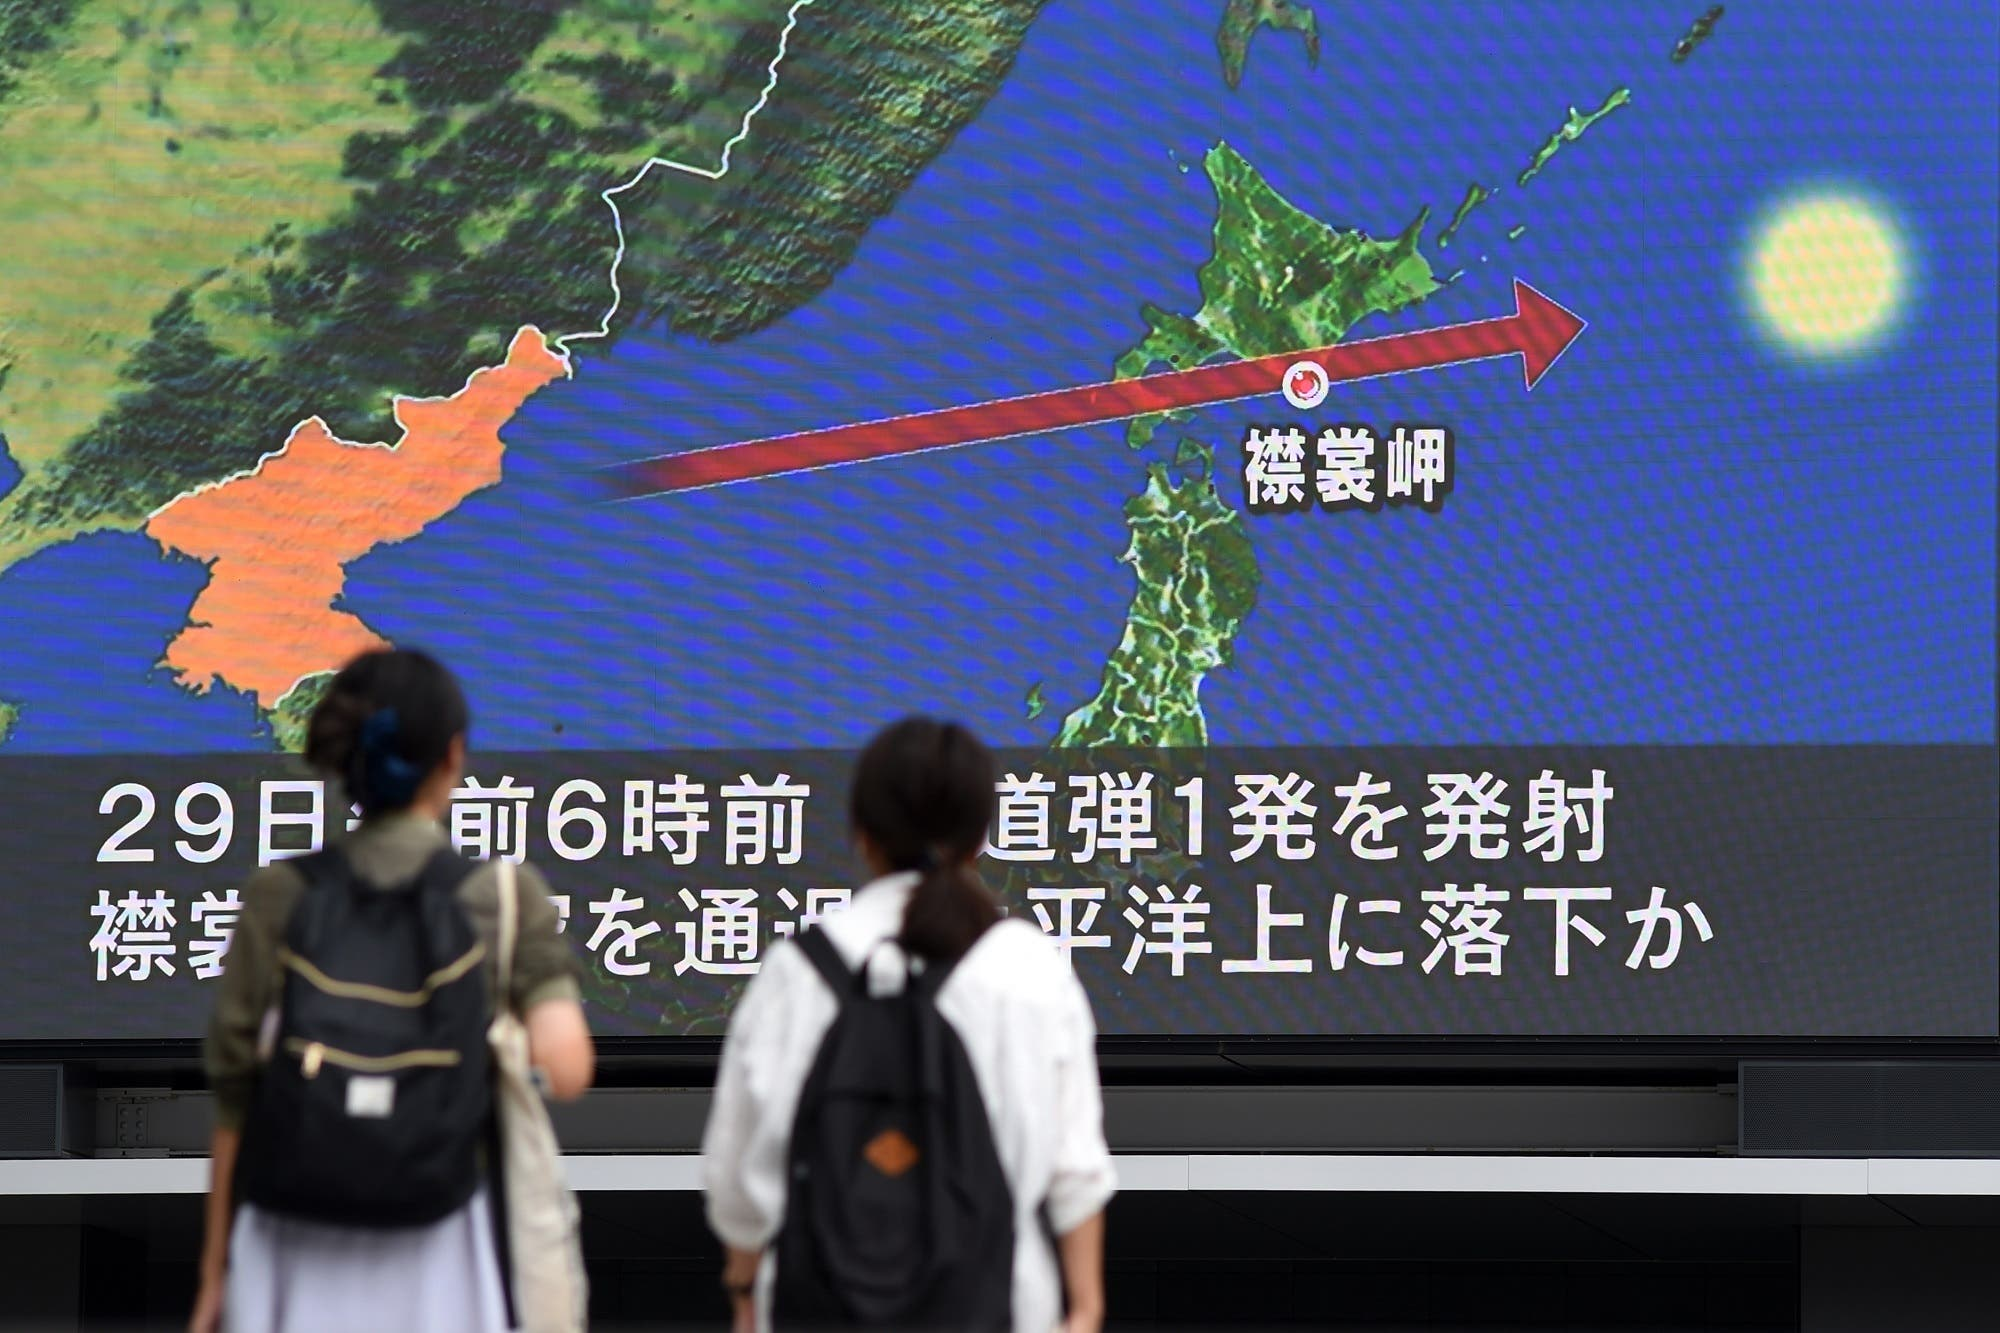 Pedestrians watch the news on a huge screen displaying a map of Japan (R) and the Korean Peninsula, in Tokyo on August 29, 2017, following a North Korean missile test that passed over Japan. (AFP)